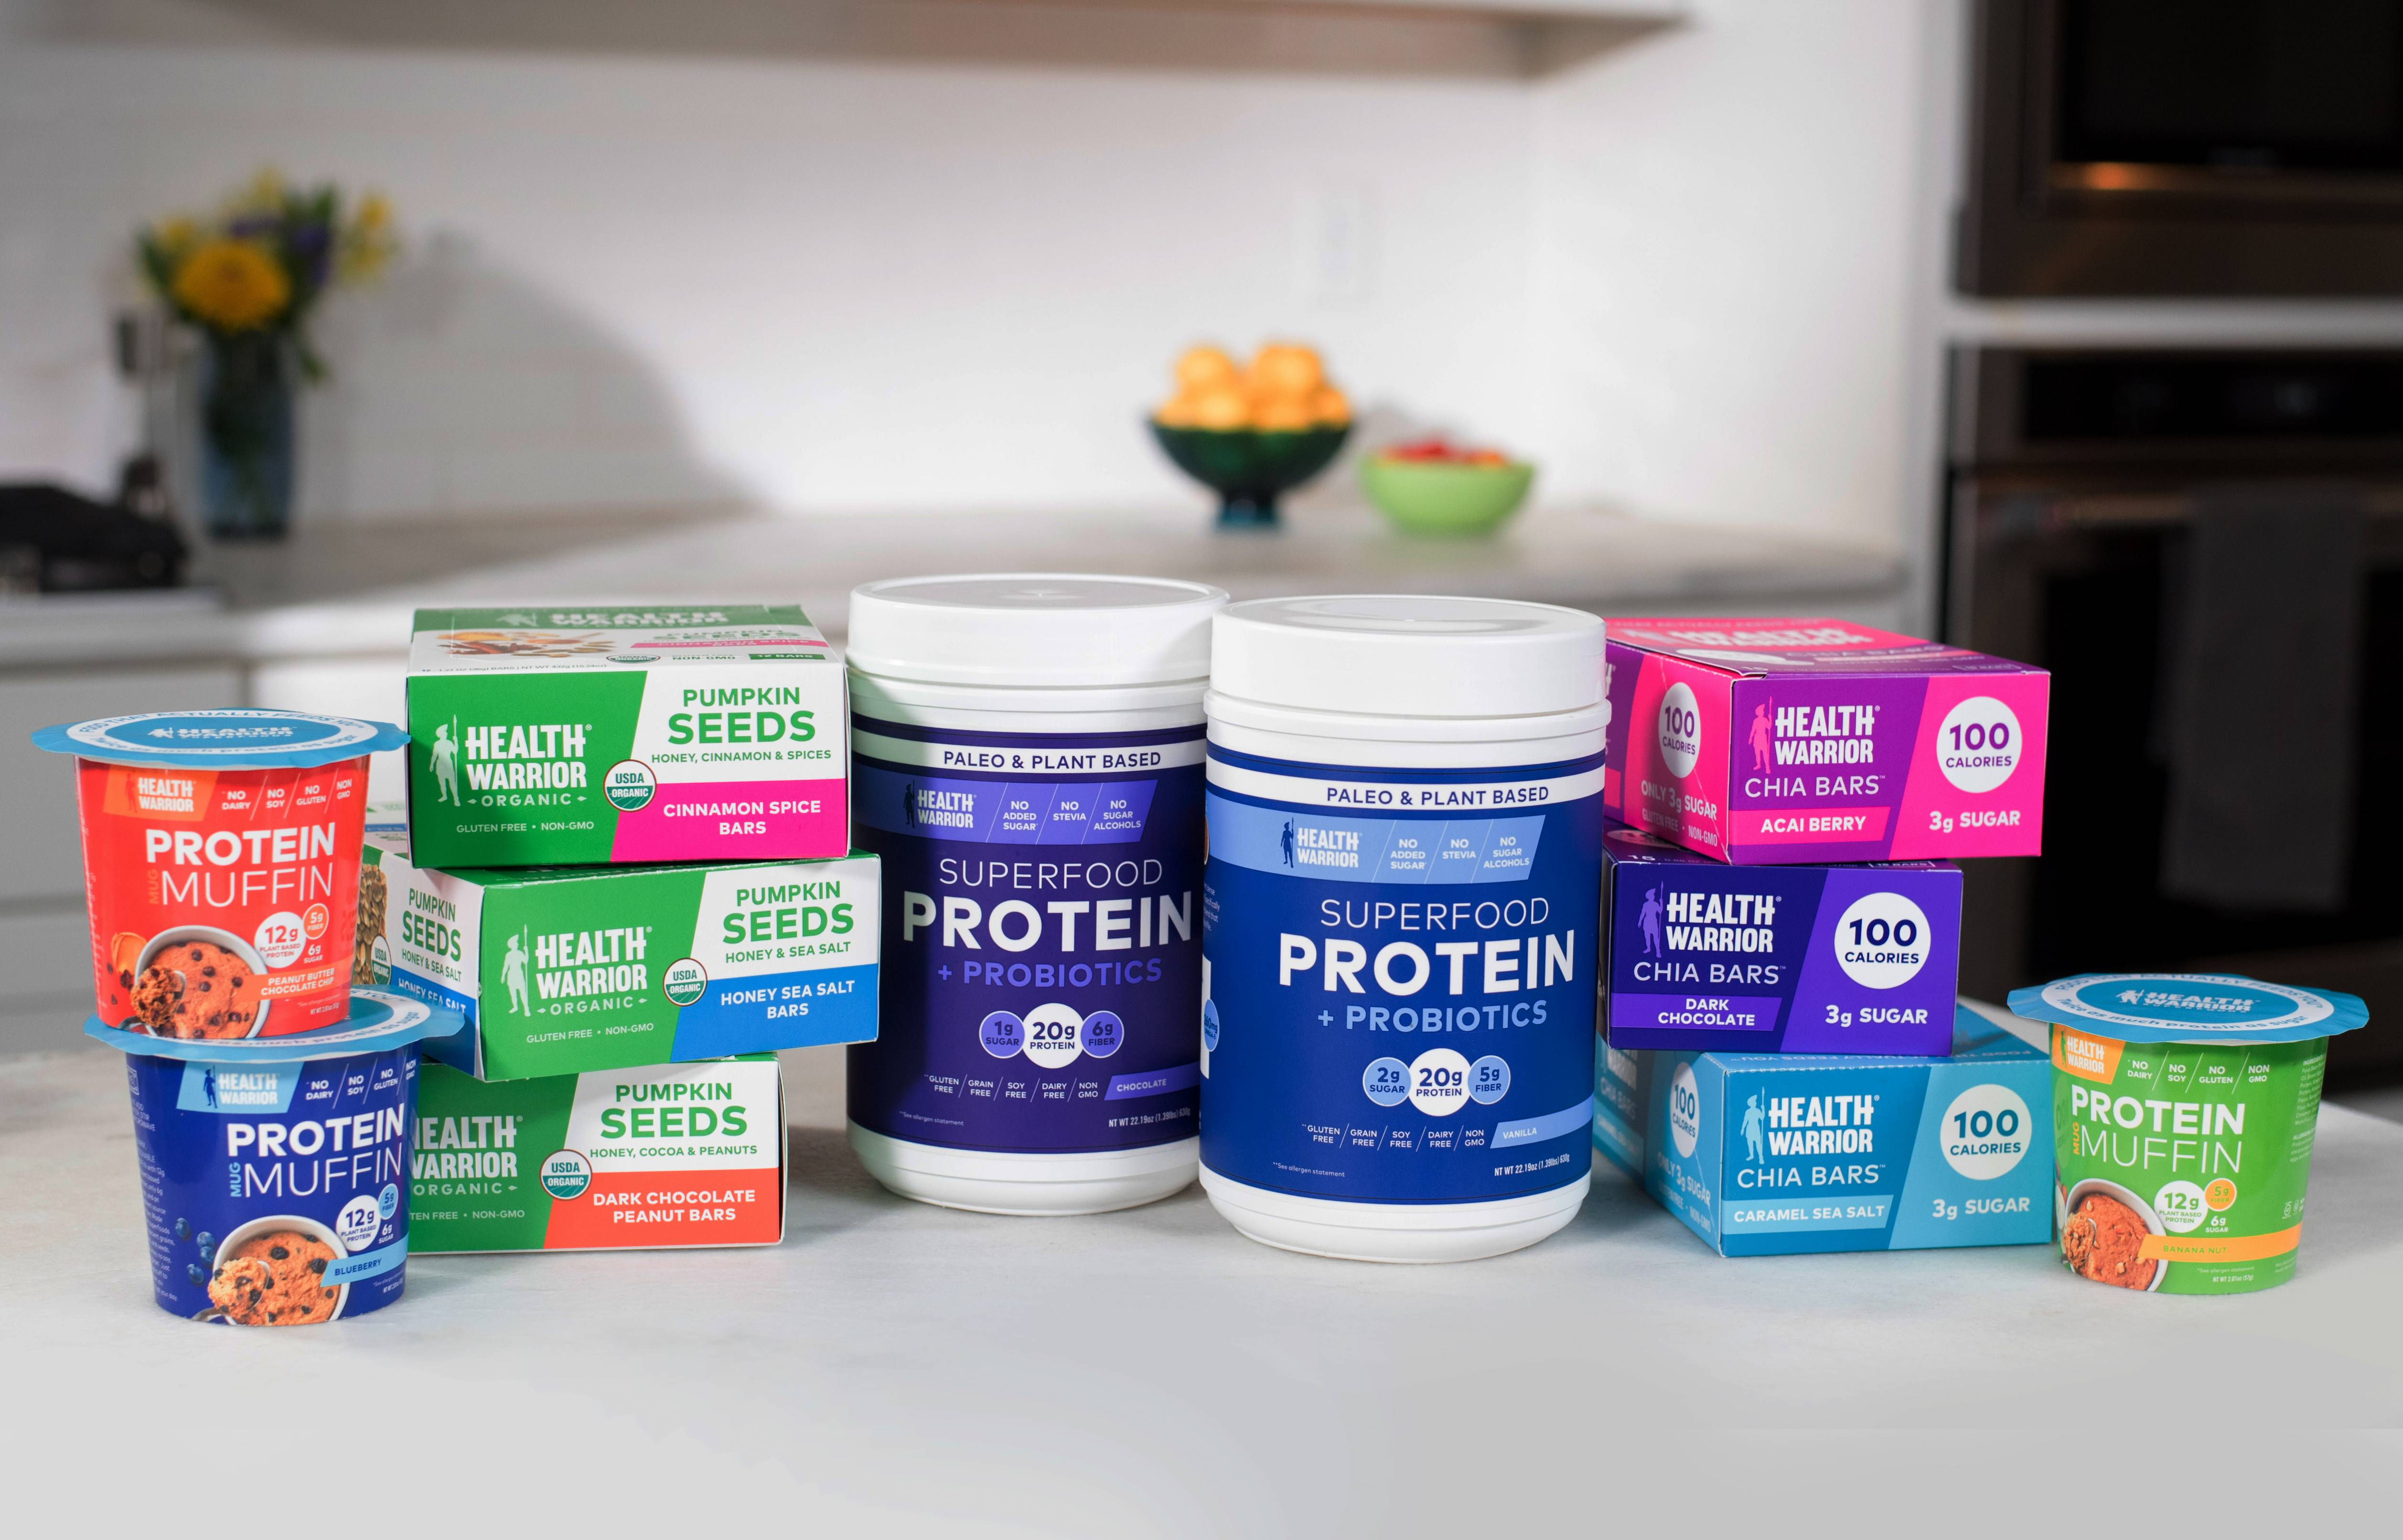 PepsiCo has acquired Health Warrior, a plant-based snack bar brand.